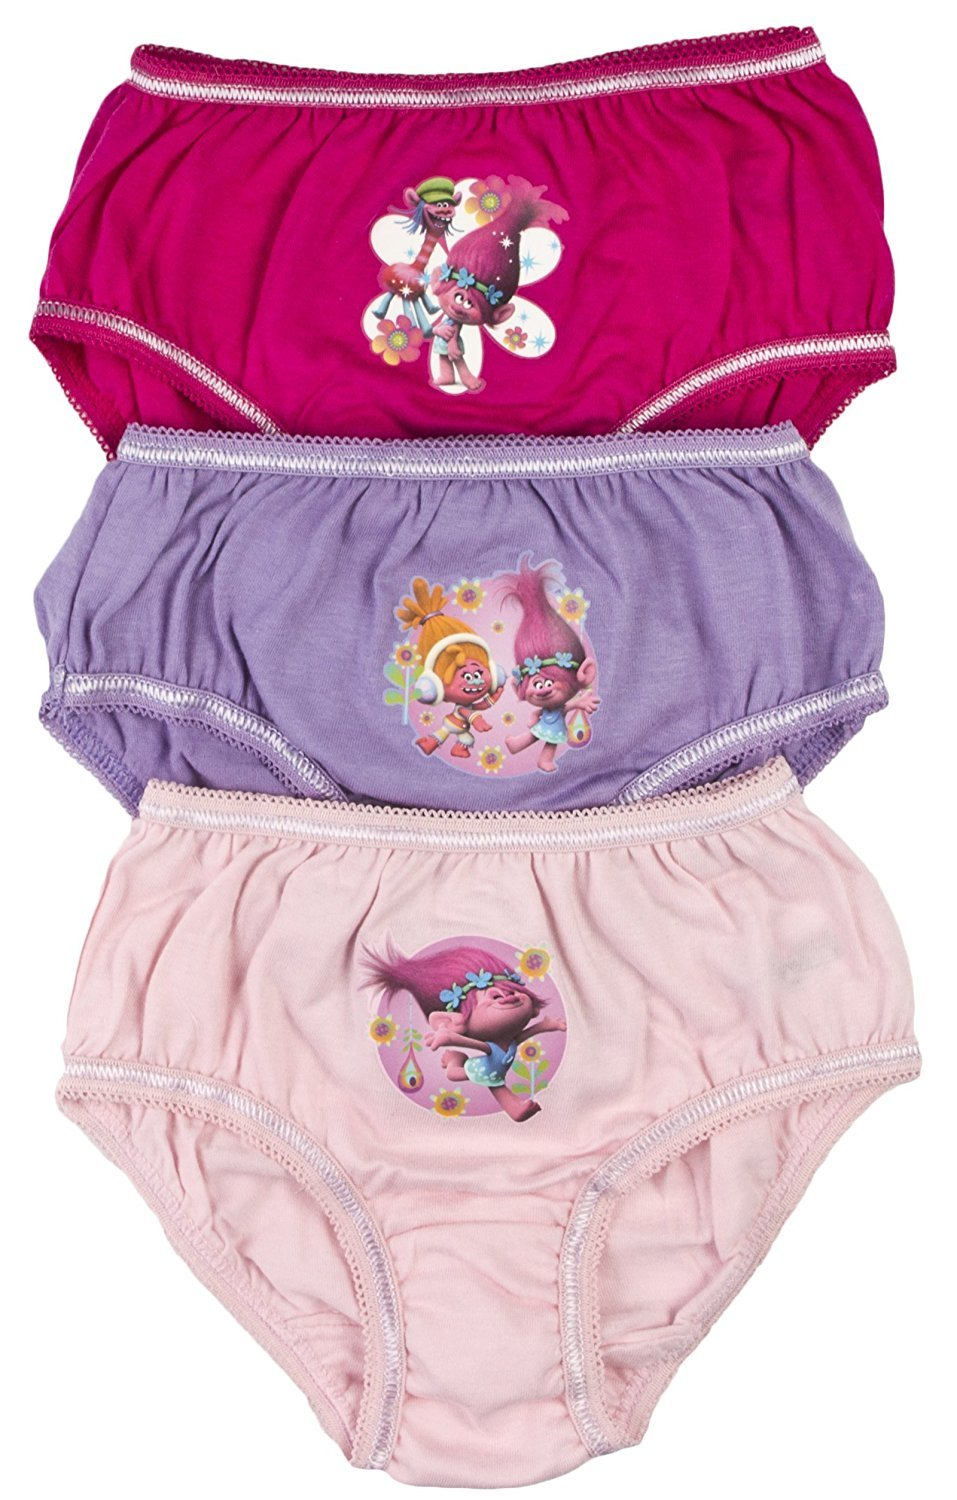 (3 Pack) - Girls Trolls Underwear Pants Briefs